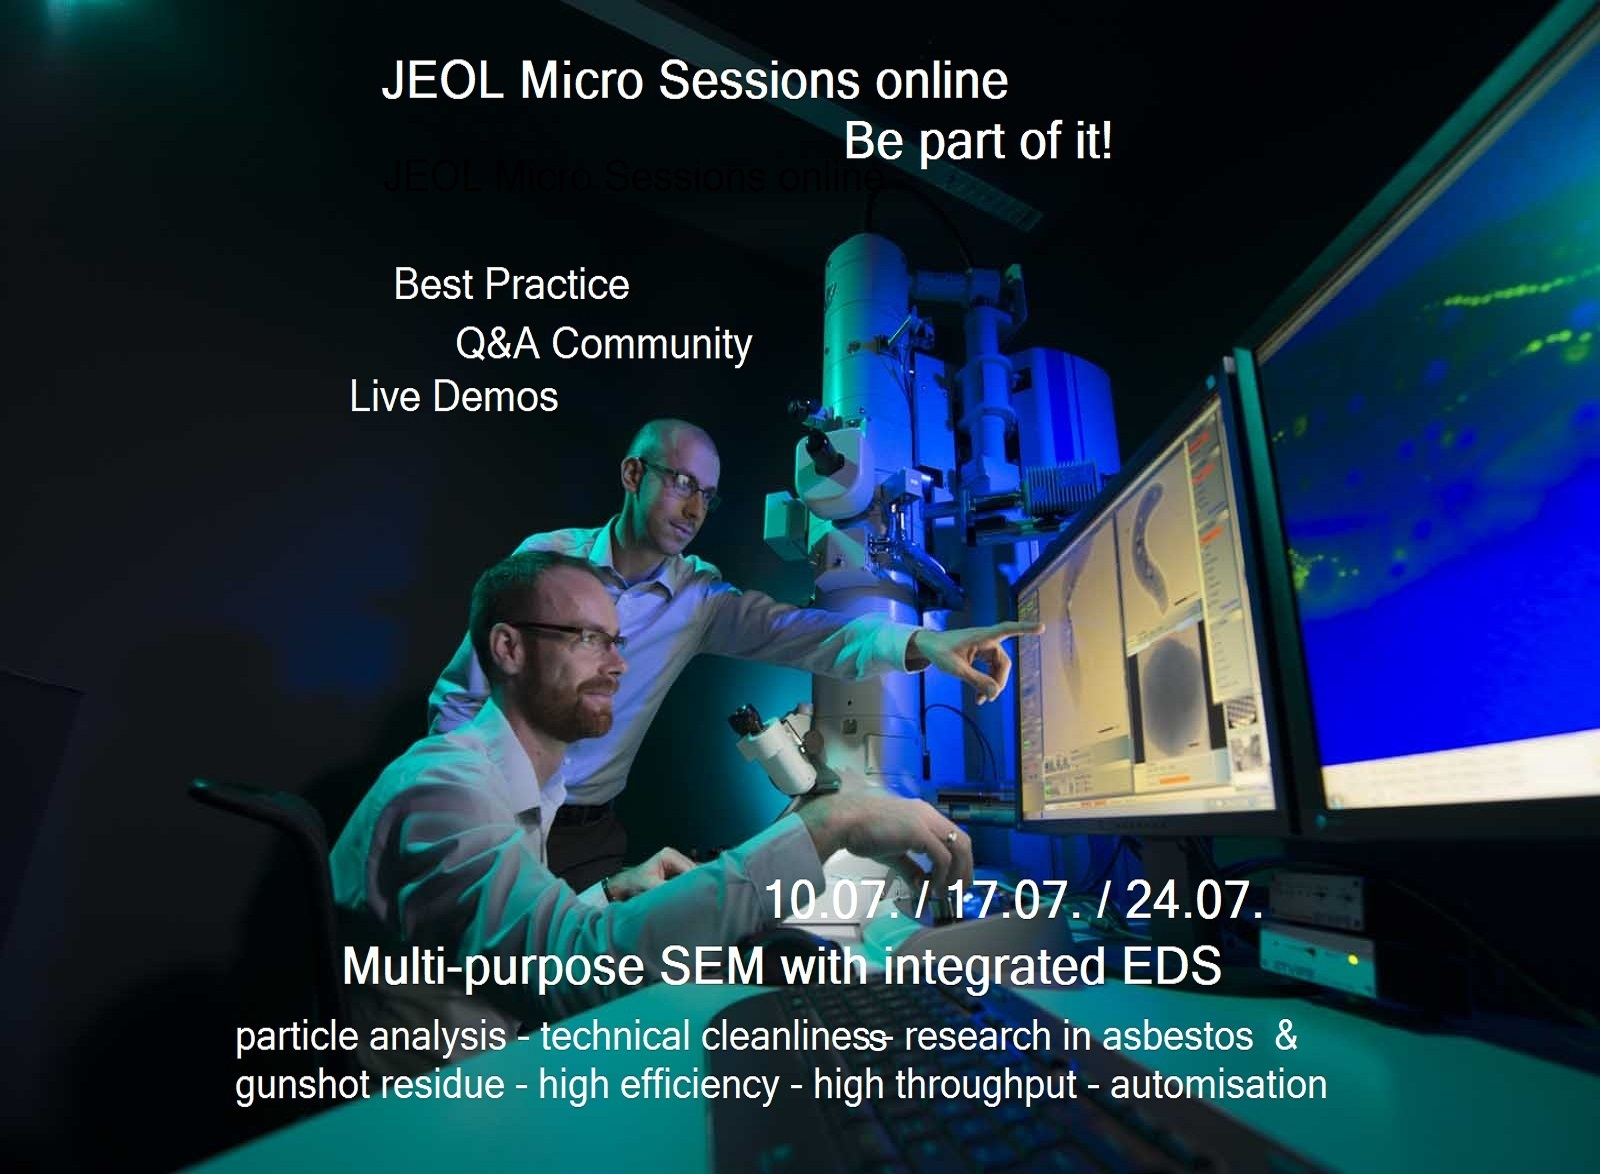 Jeol starts Micro Sessions